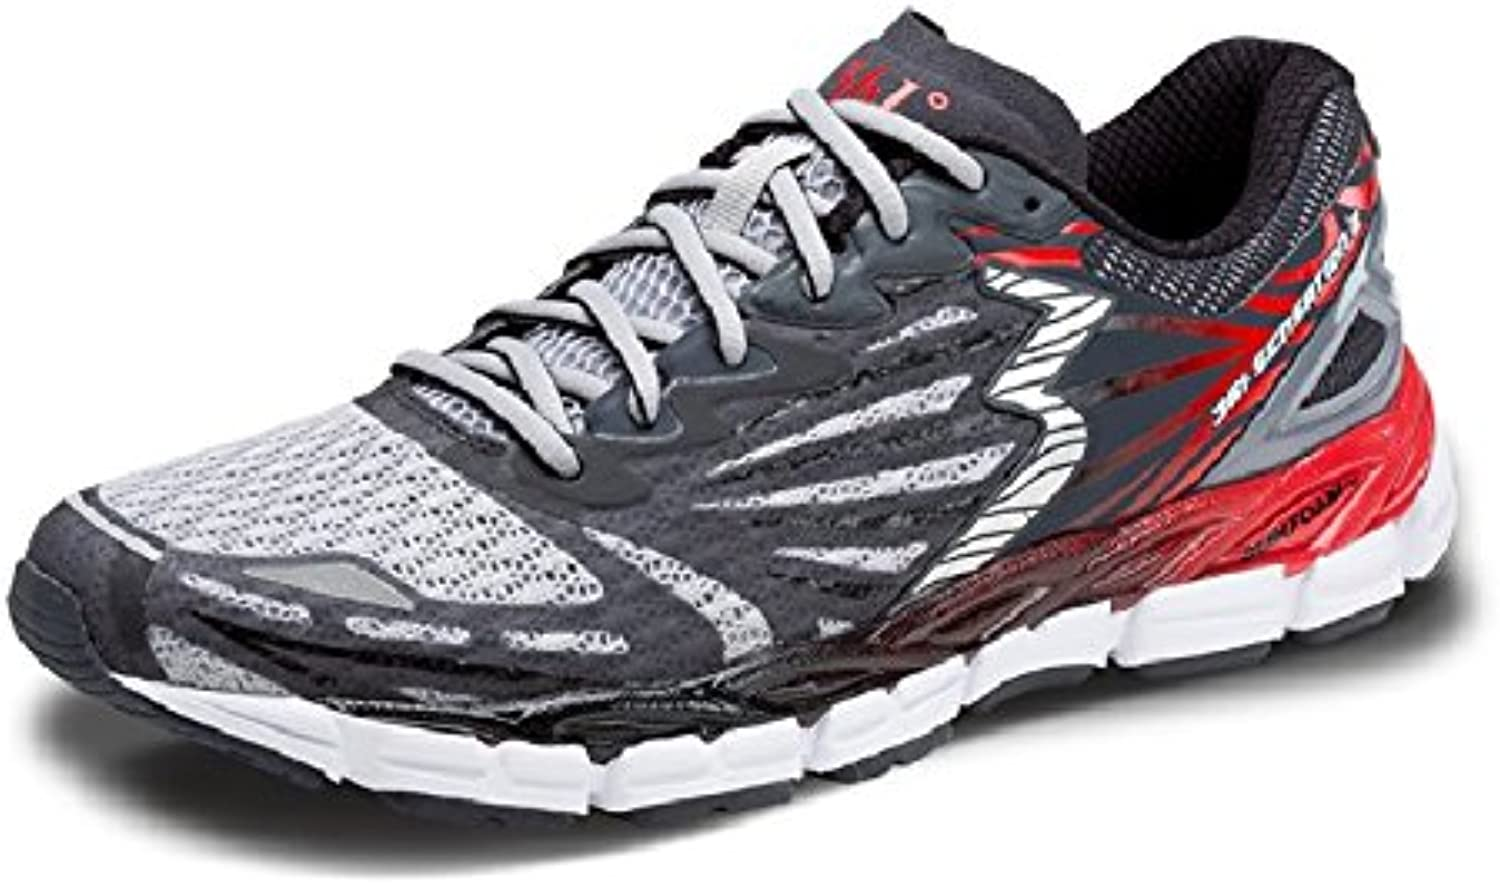 361 sansation 2 sleet-risk Red Zapato Running Hombre n.42.5